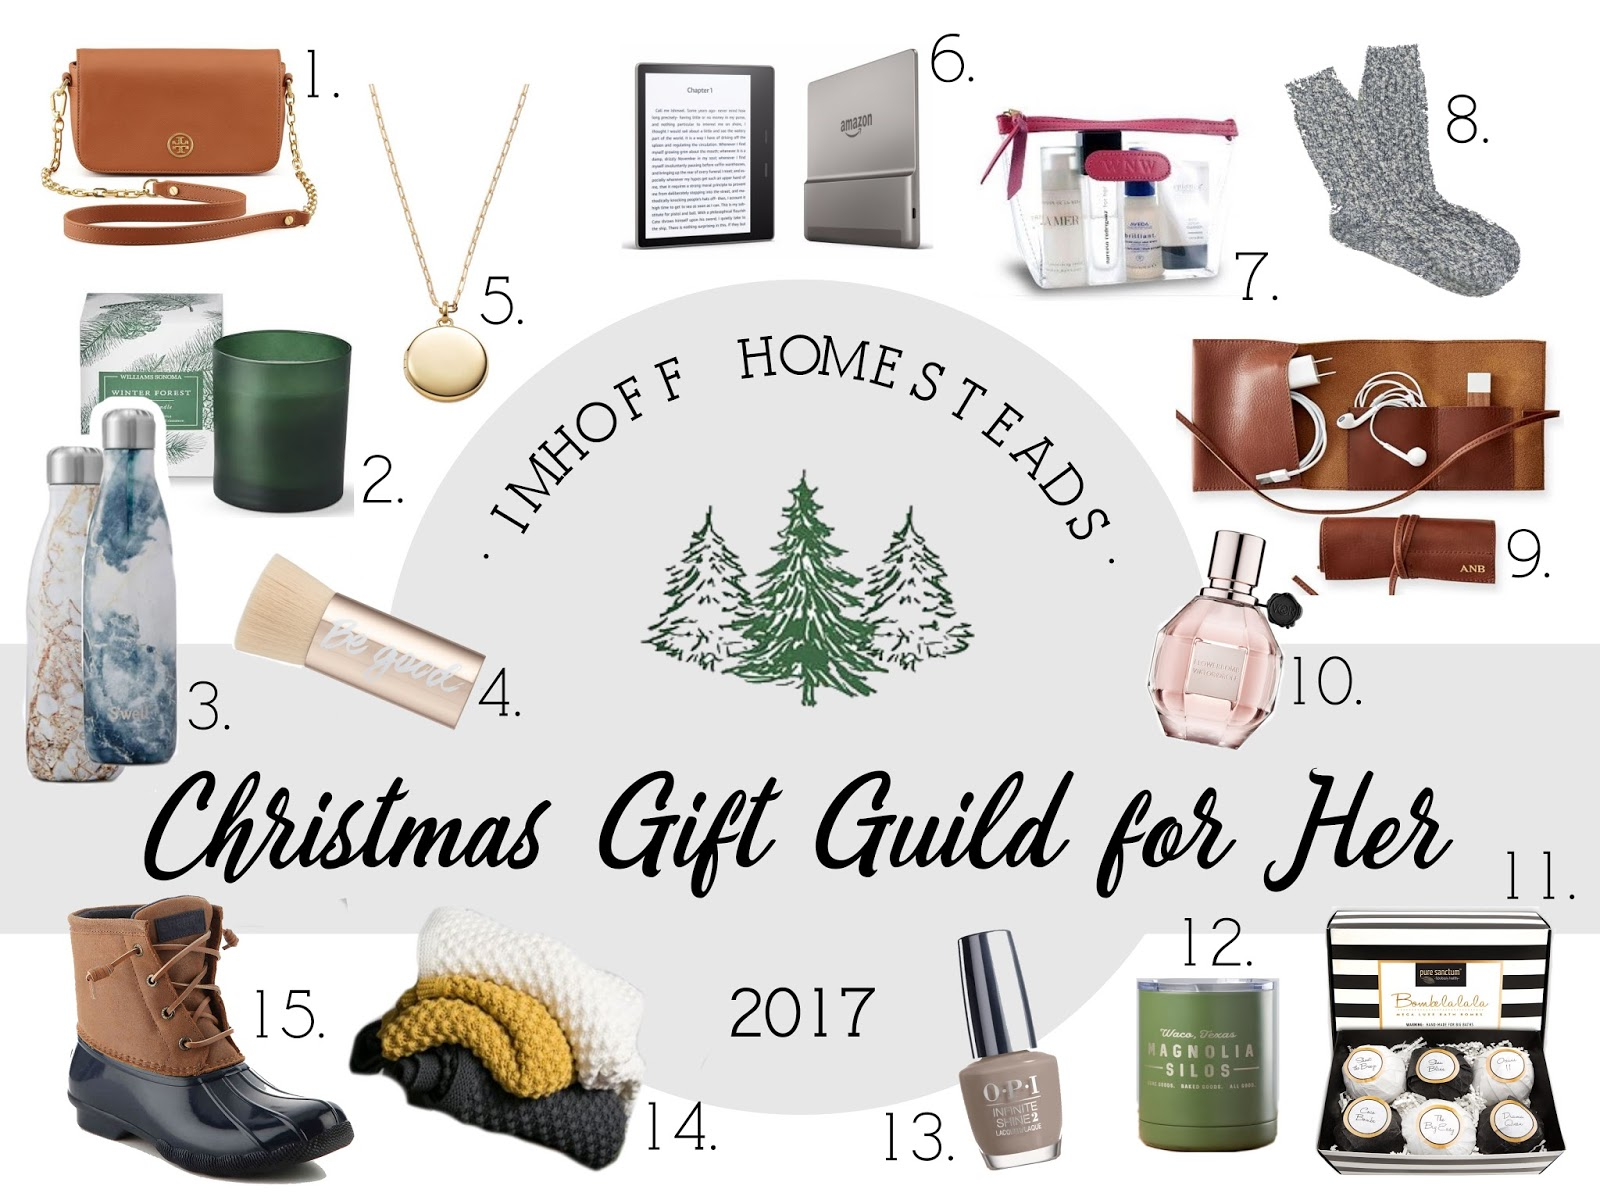 imhoff homesteads christmas gift guide for her 2017